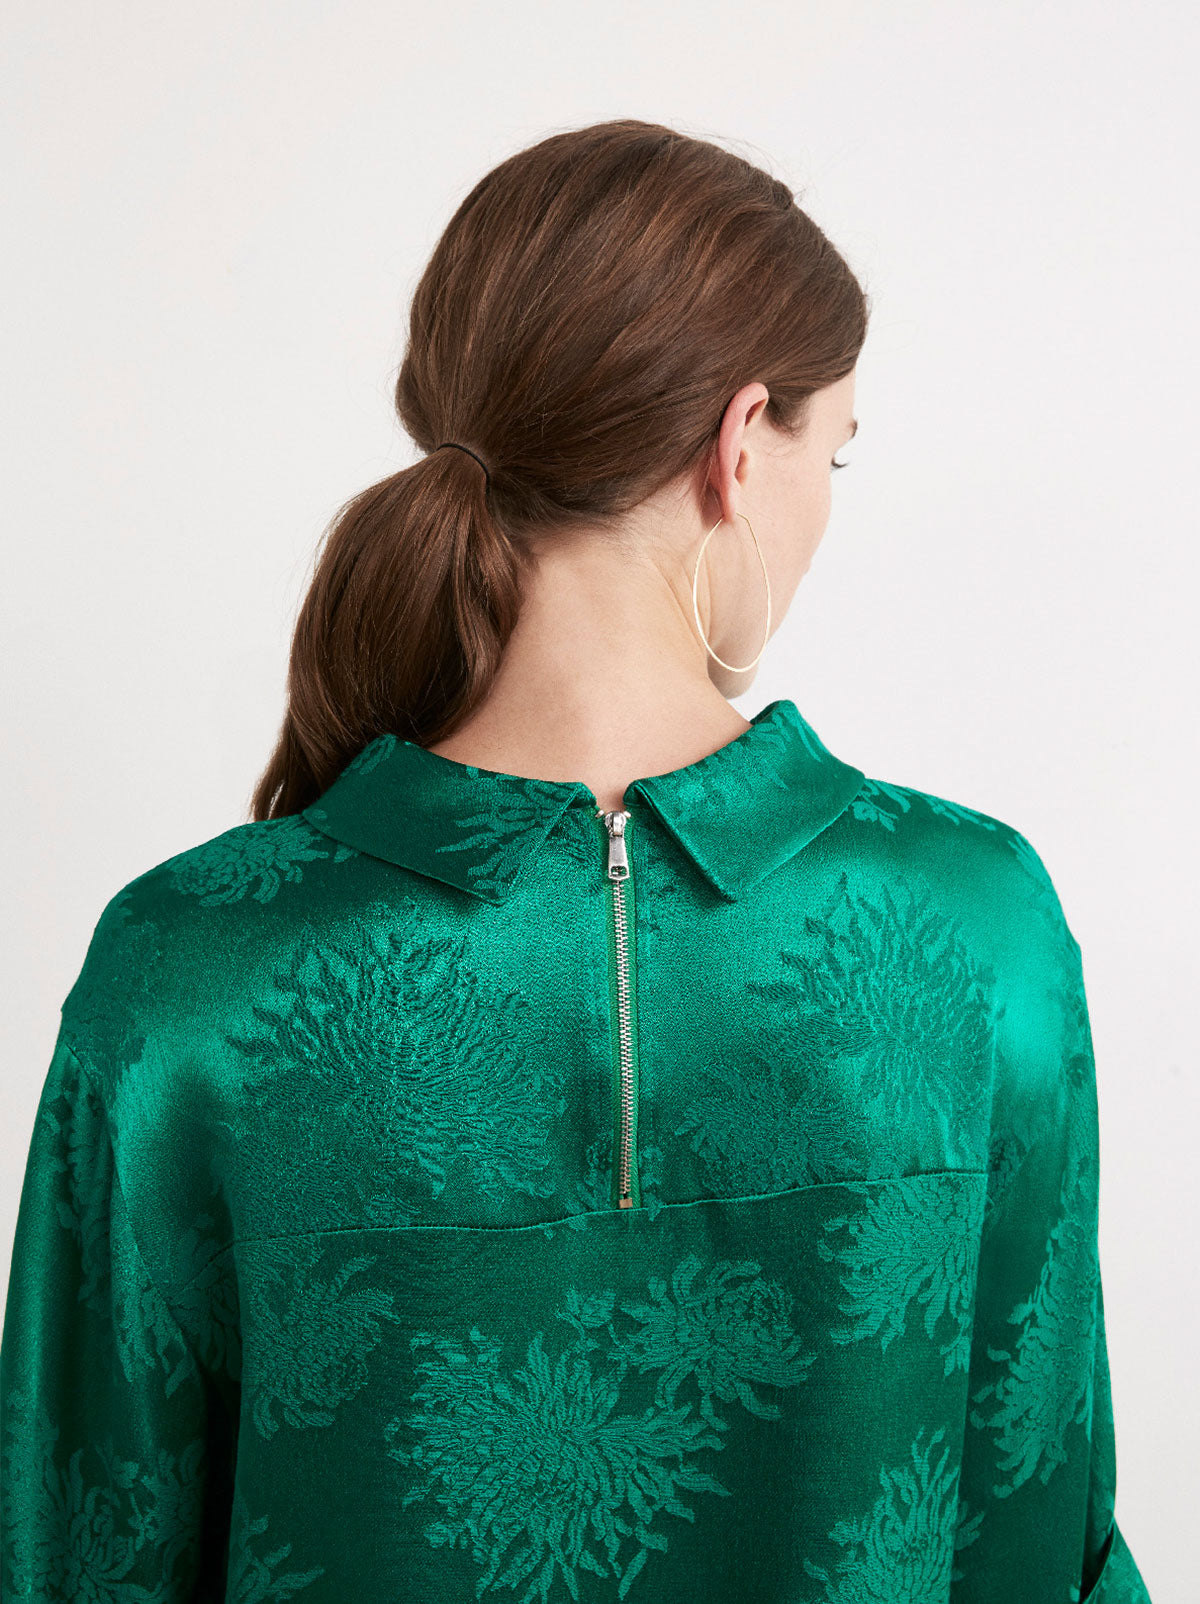 Heidi Green Rolled Collar Top by KITRI Studio